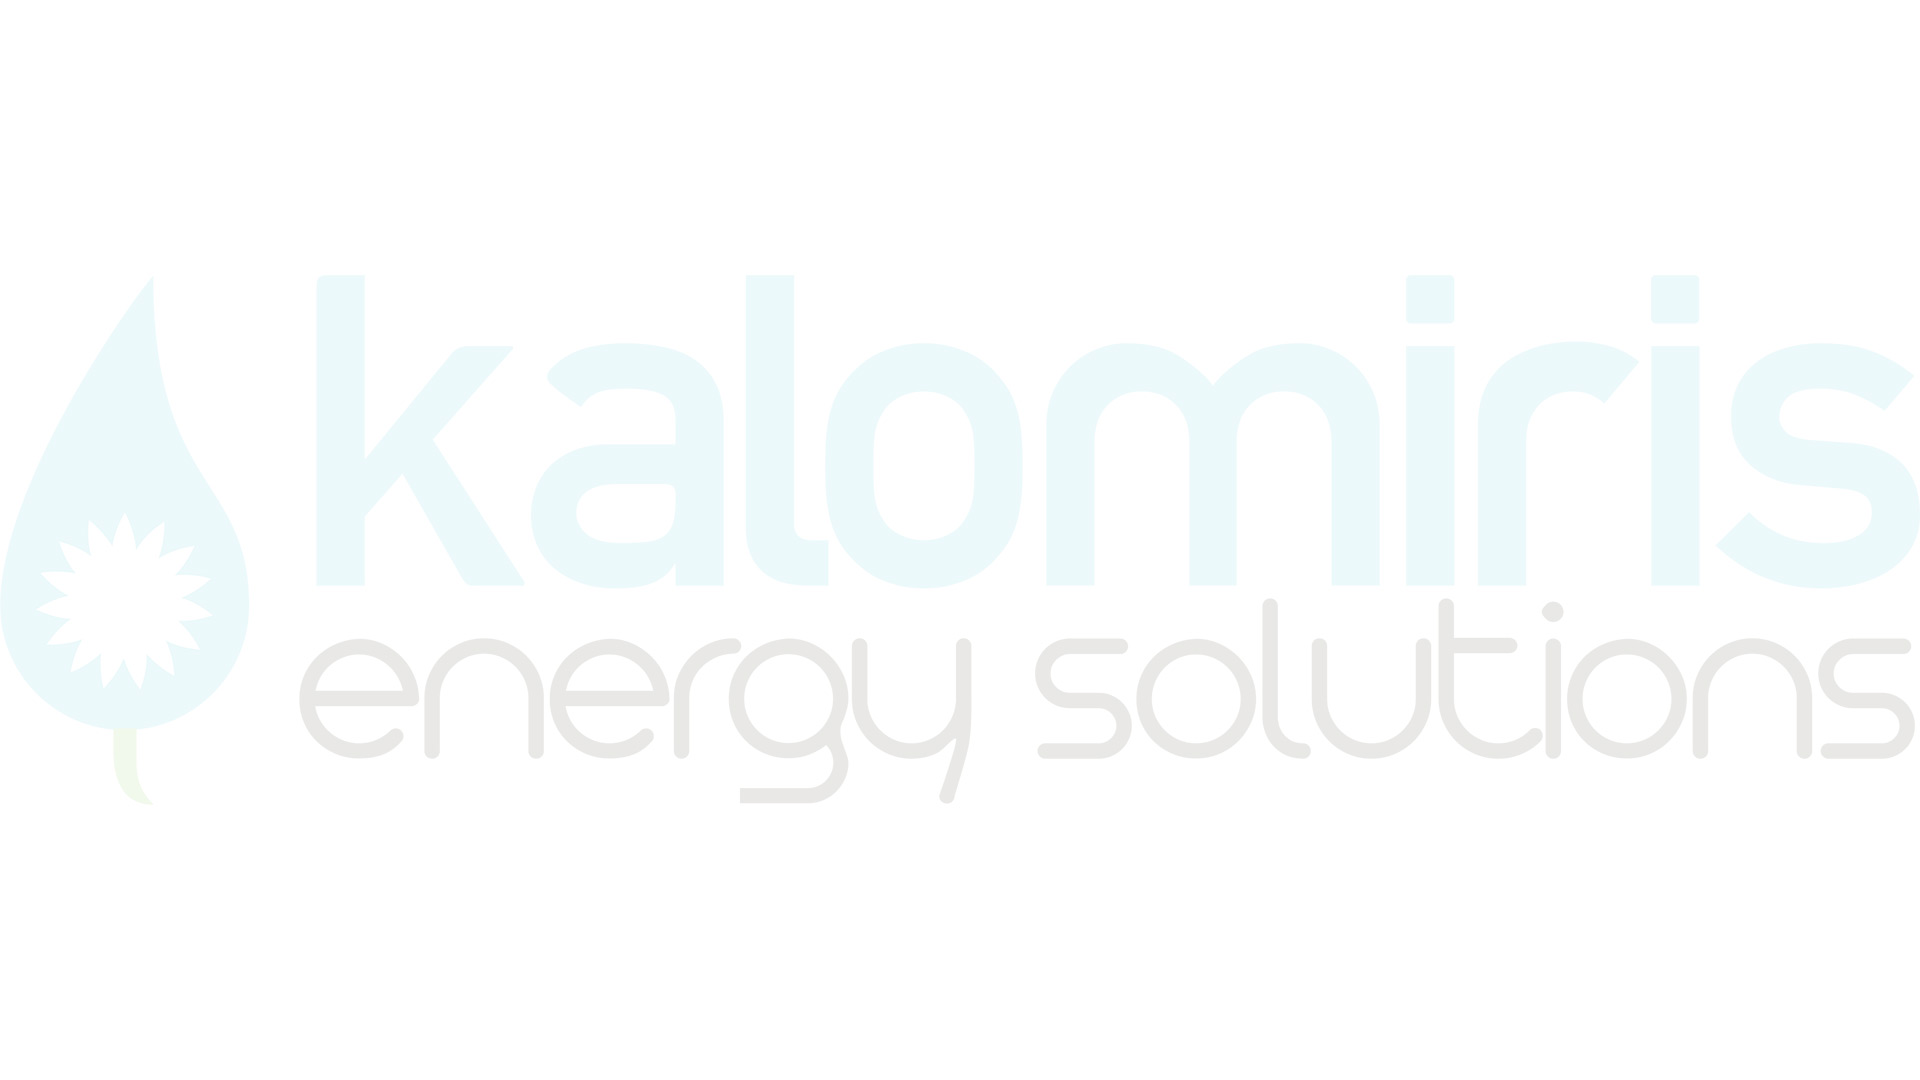 """Ceiling Fan CASAFAN ECO CONCEPT 132 LG-WE/LG White / Light Gray 52"""" (132cm) with Light KIT"""